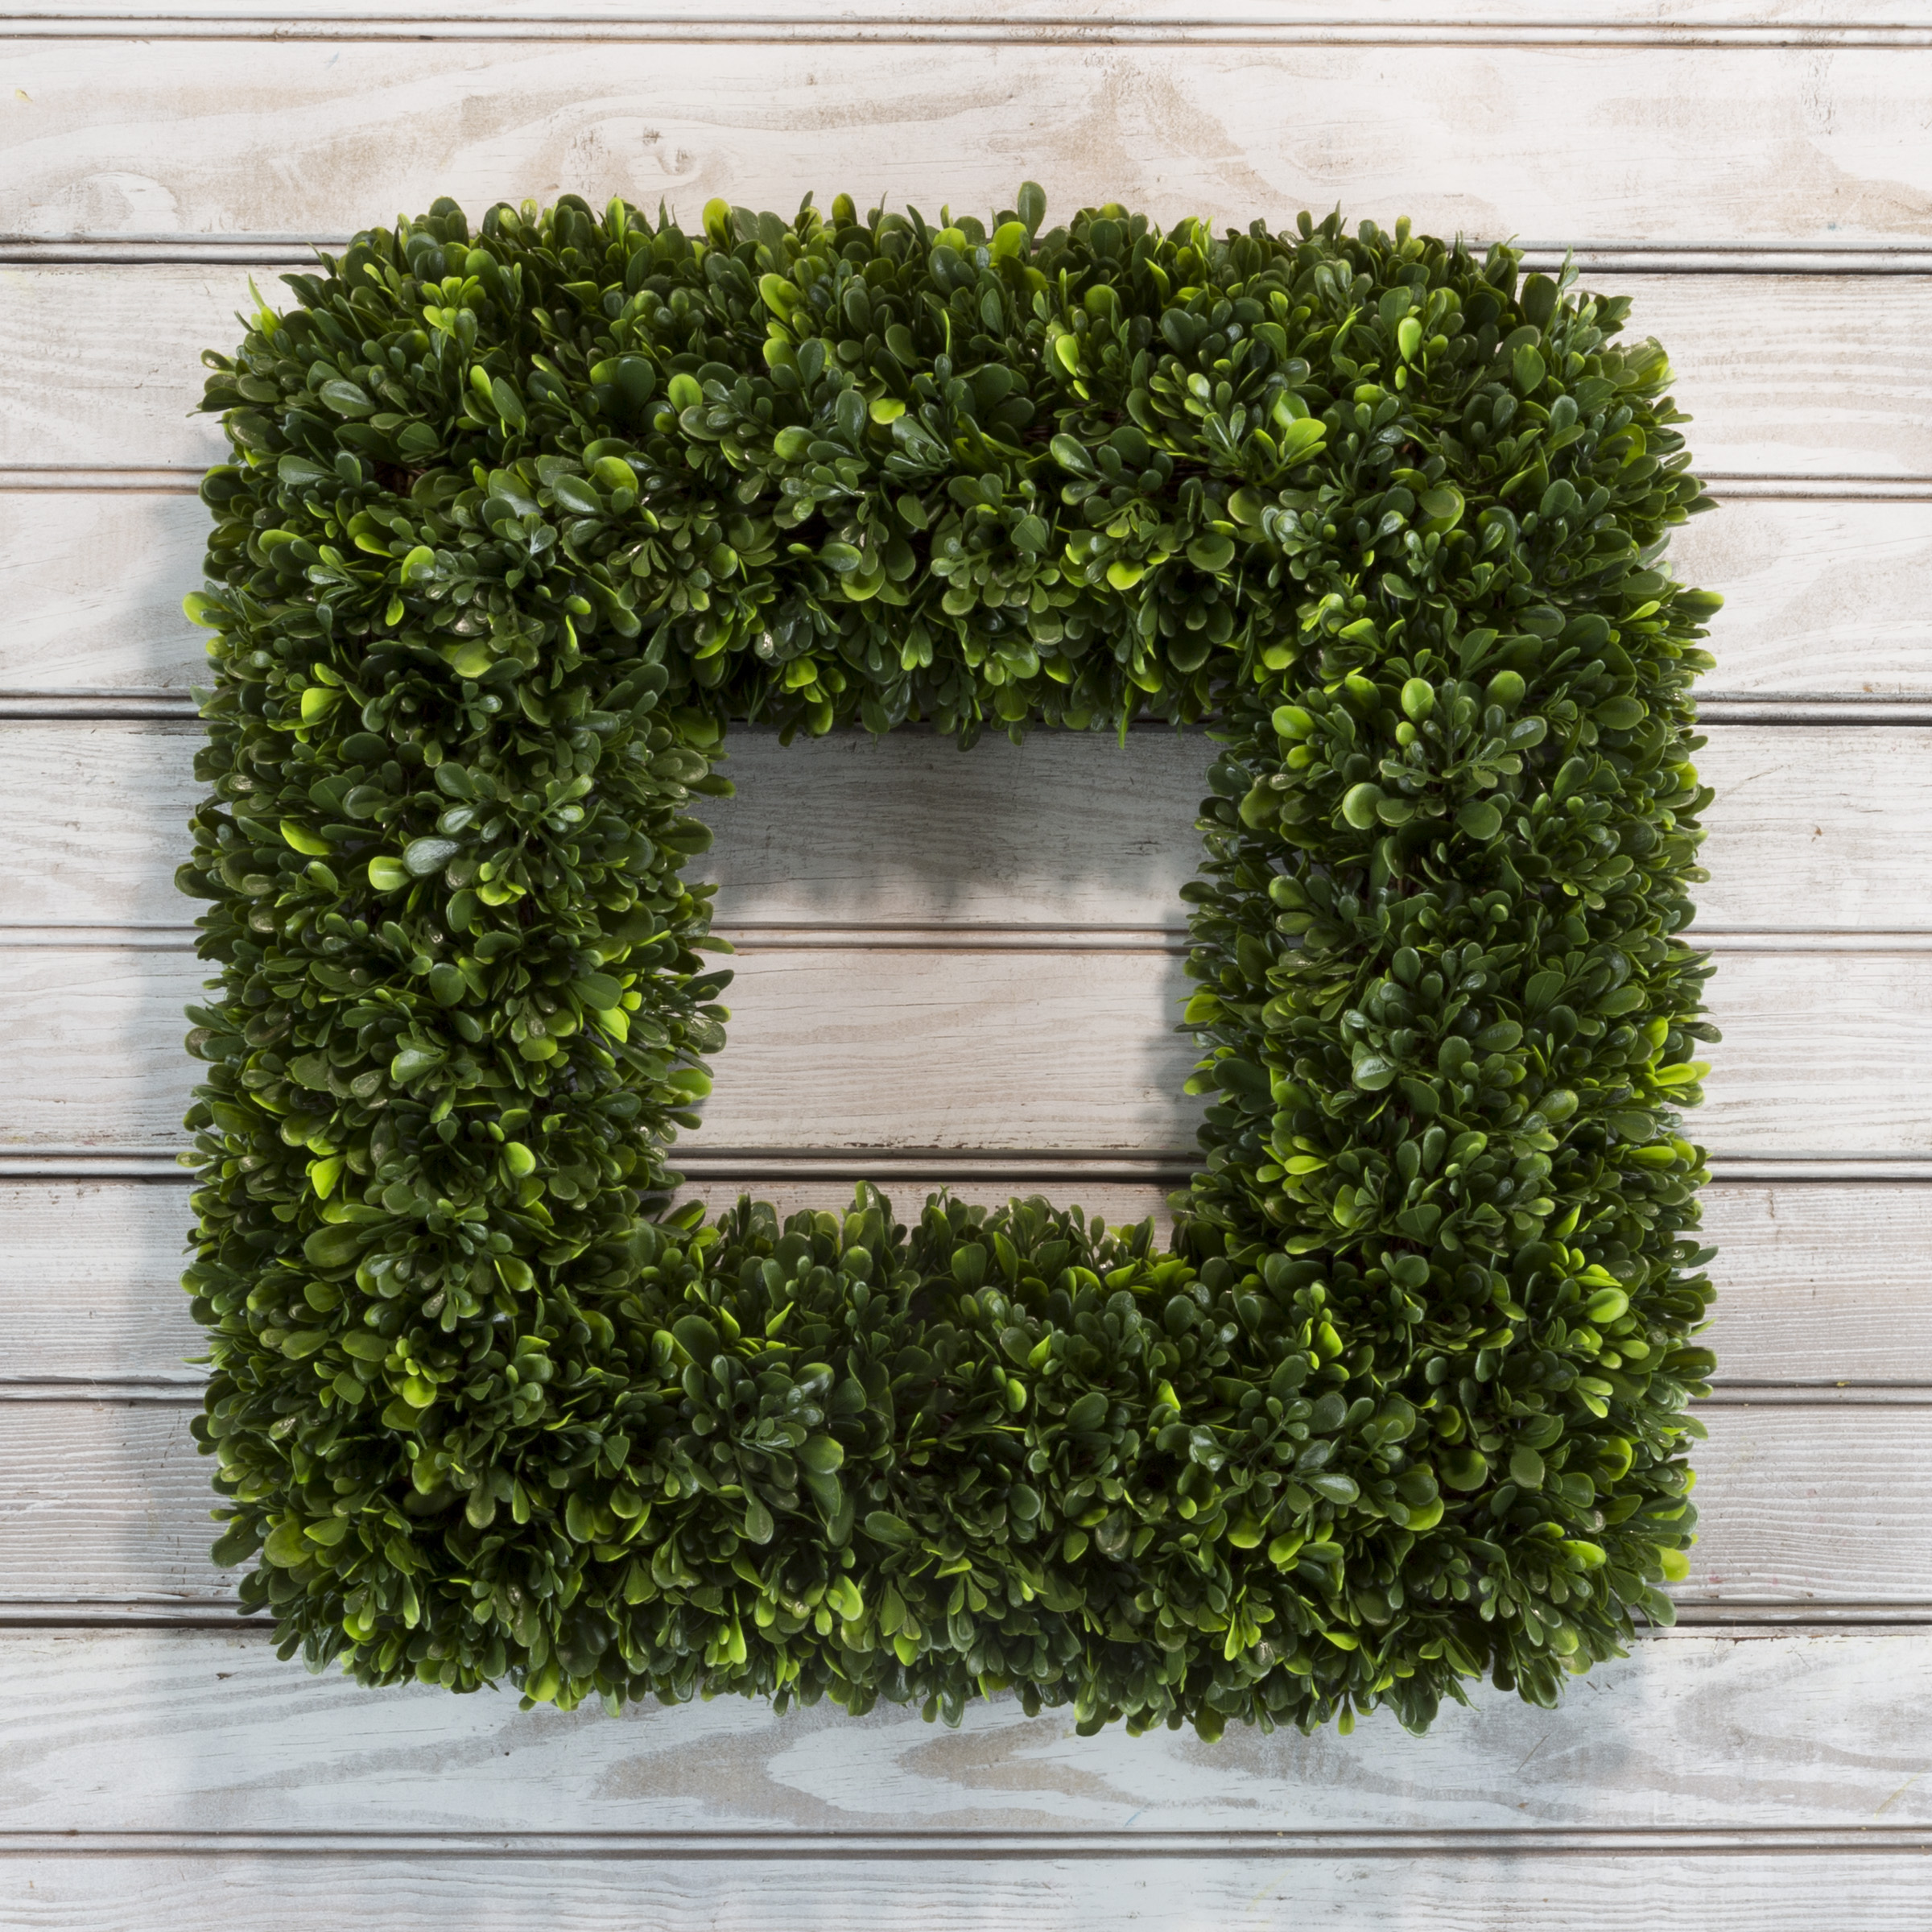 Artificial Tea Leaf Wreath With Grapevine Base Uv Resistant Greenery Square Slim Profile For Front Door Wall Decor By Pure Garden 17